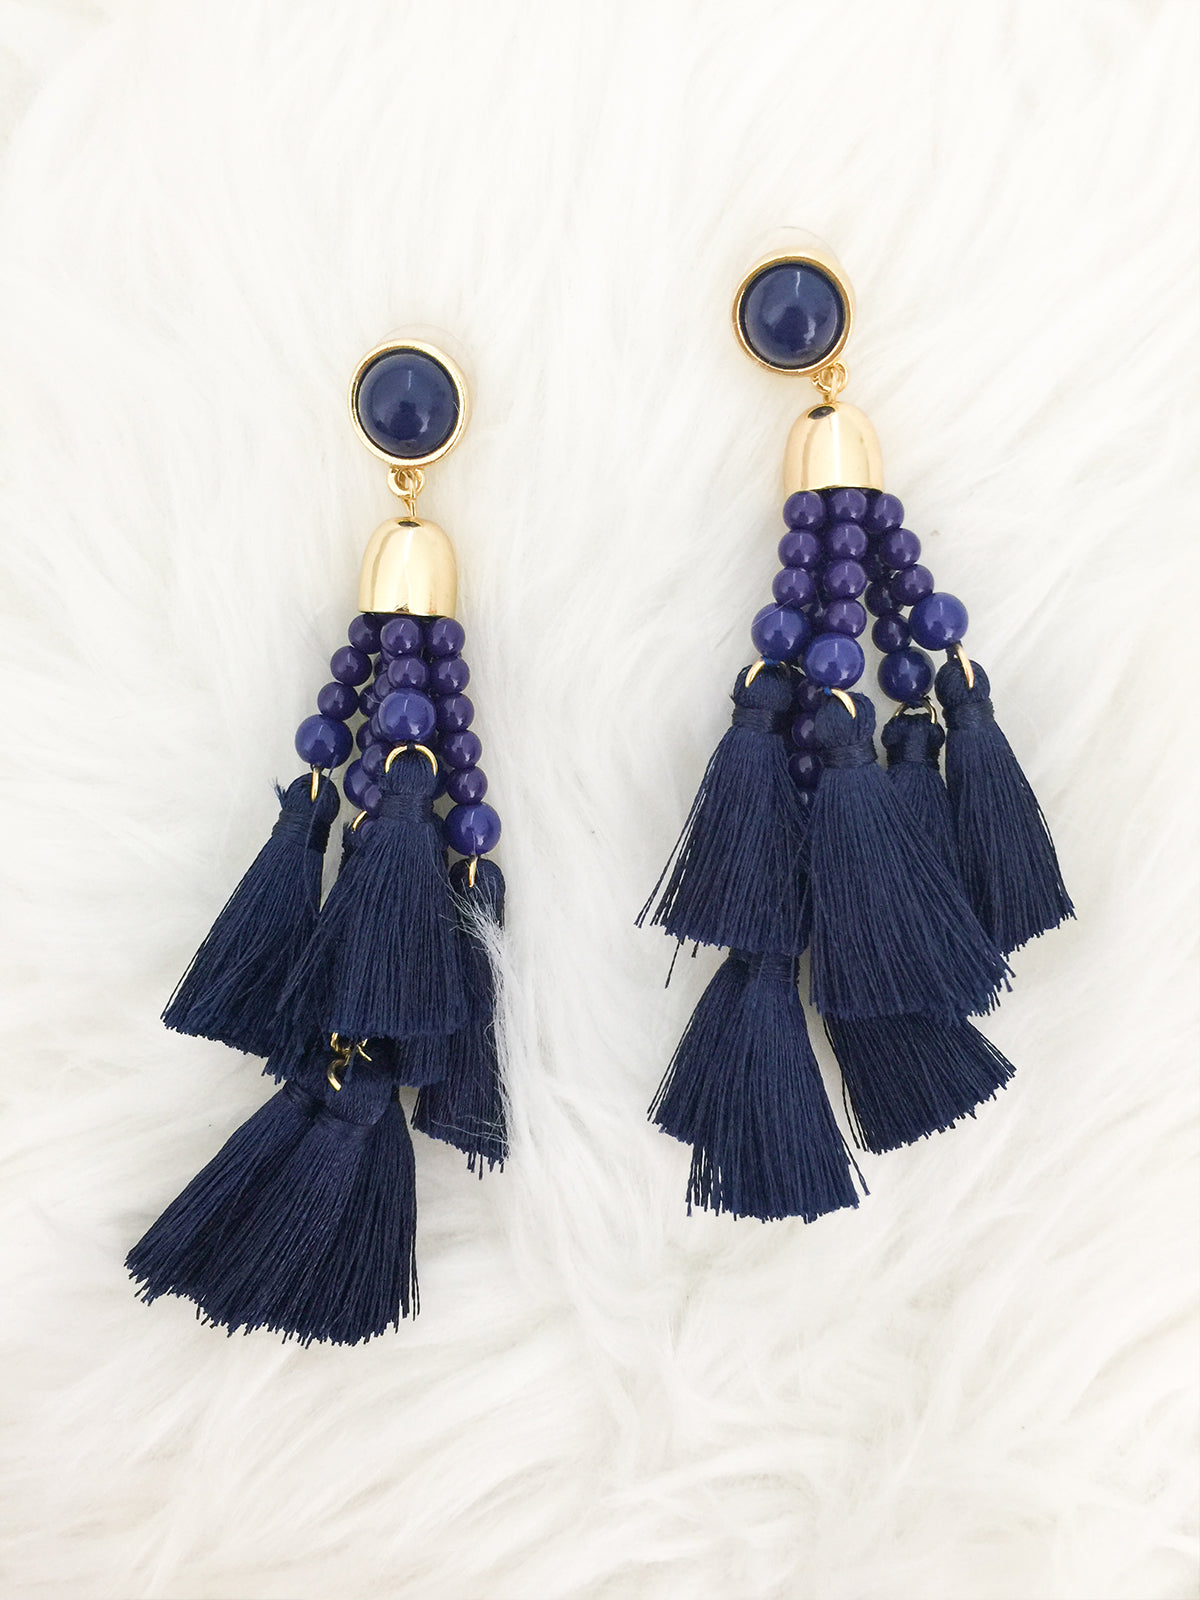 ombre tassle black tassel earrings fan made products occasionally